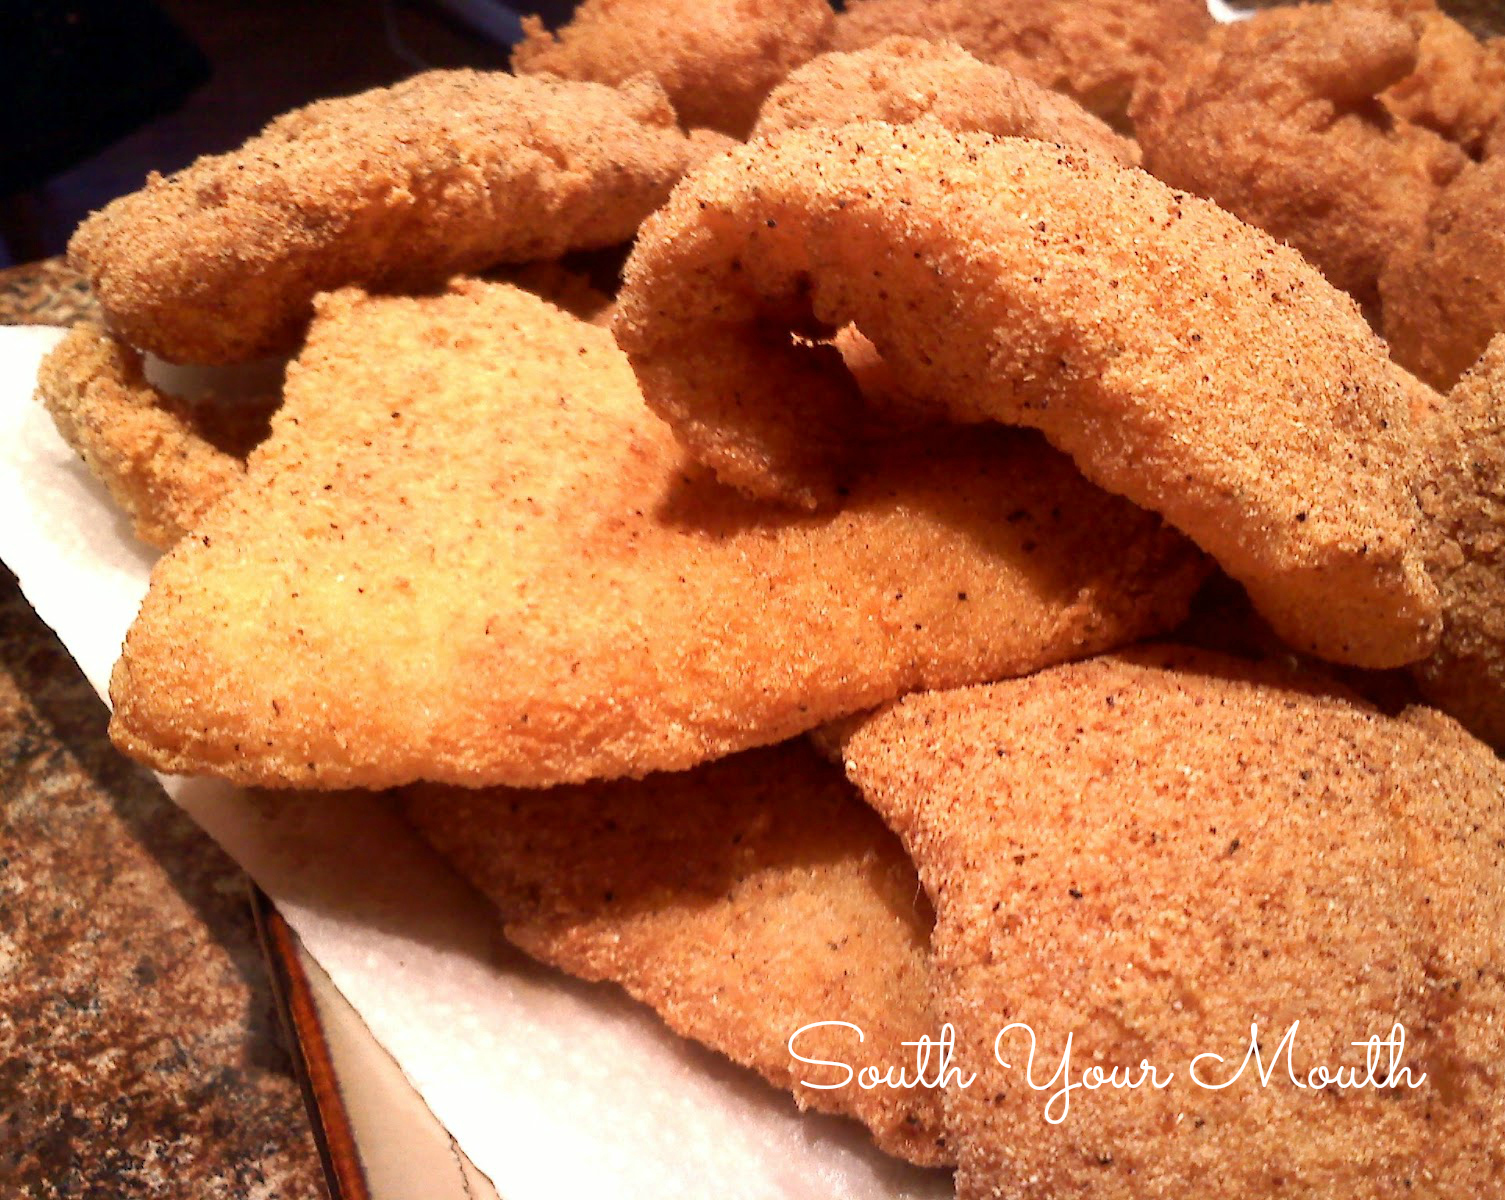 South your mouth southern fried fish for Fish fry images